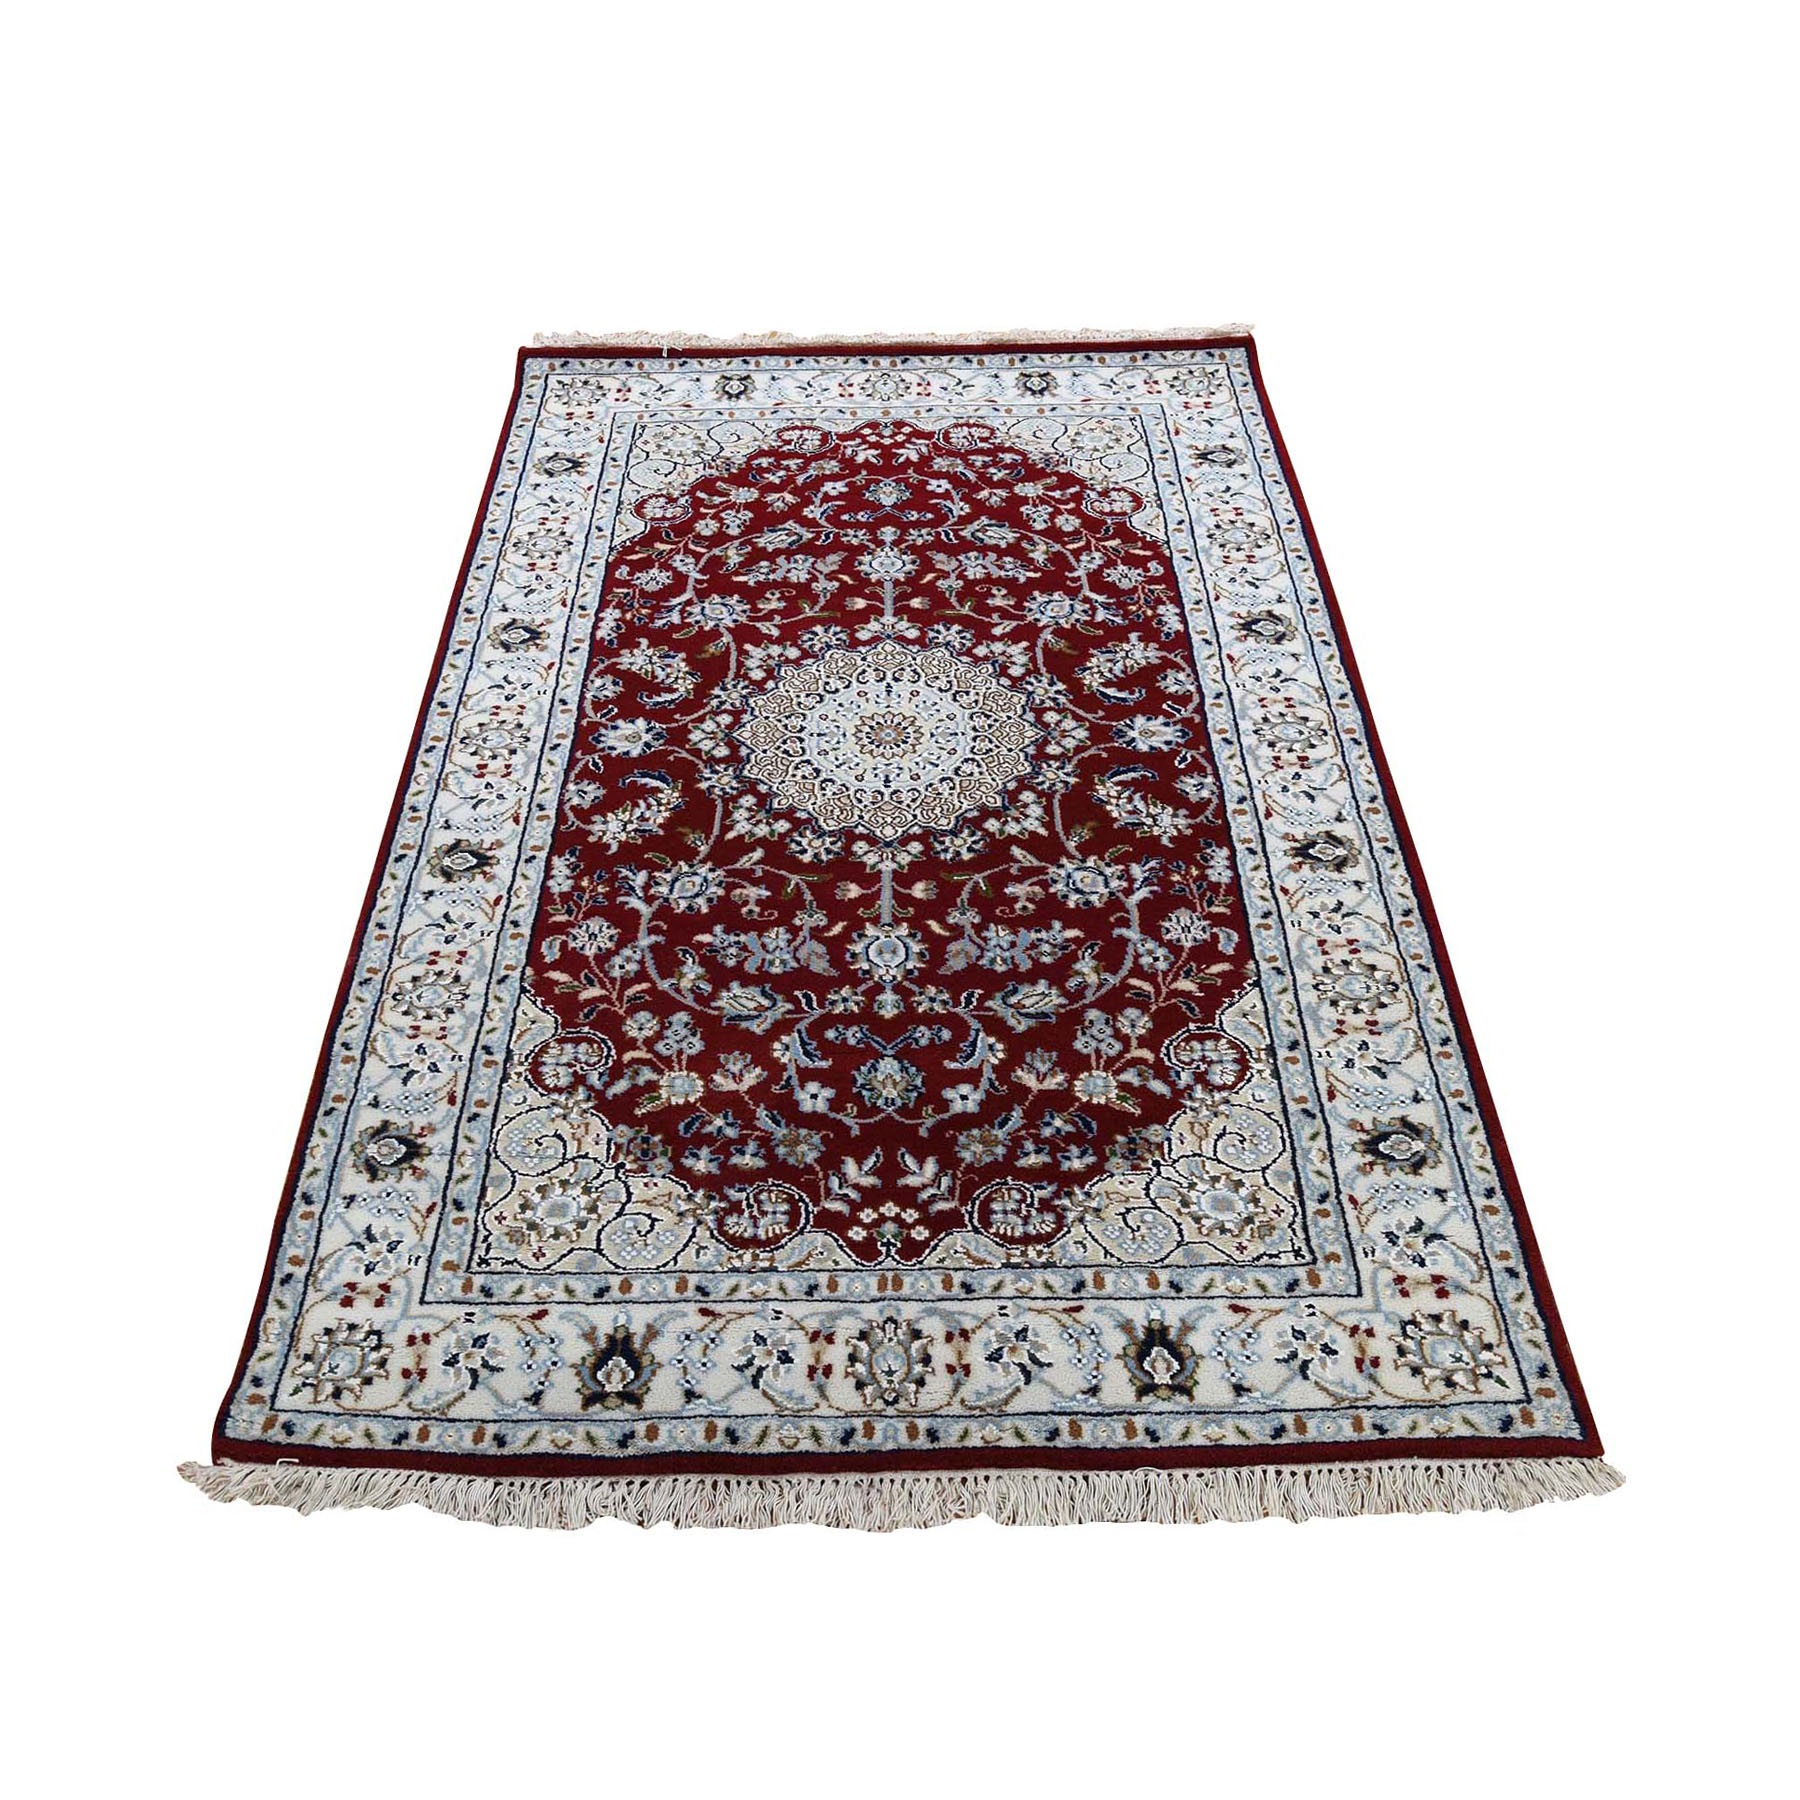 "3'2""x5'4"" Red Nain Wool And Silk 250 KPSI Hand Woven Oriental Rug"